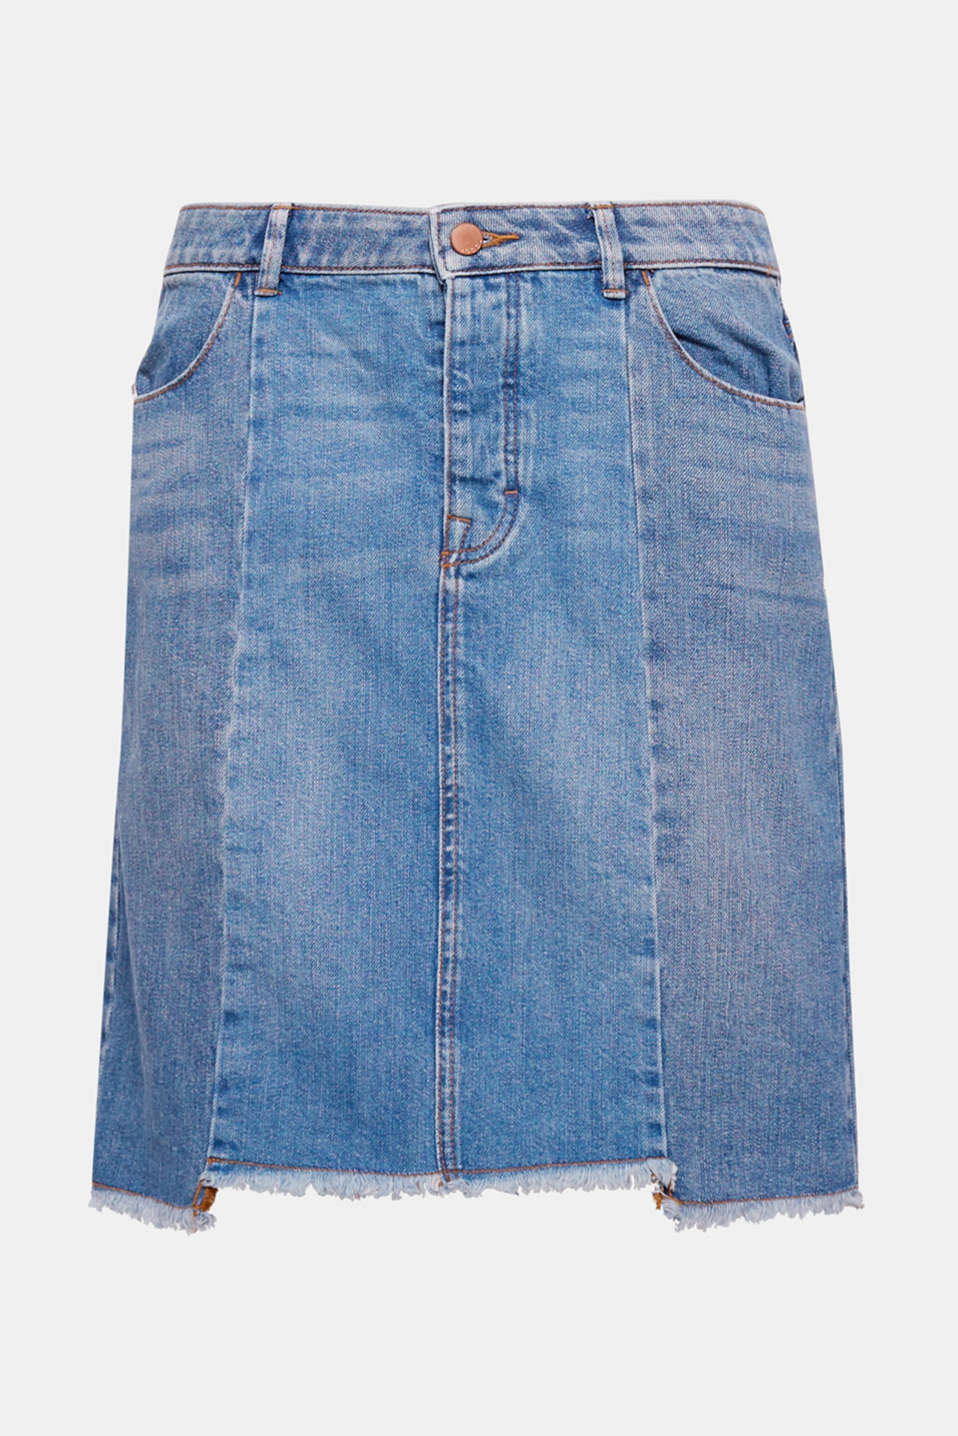 This high-waisted denim mini skirt with shaping dividing seams and a frayed hem edge is an indispensable fashion essential.